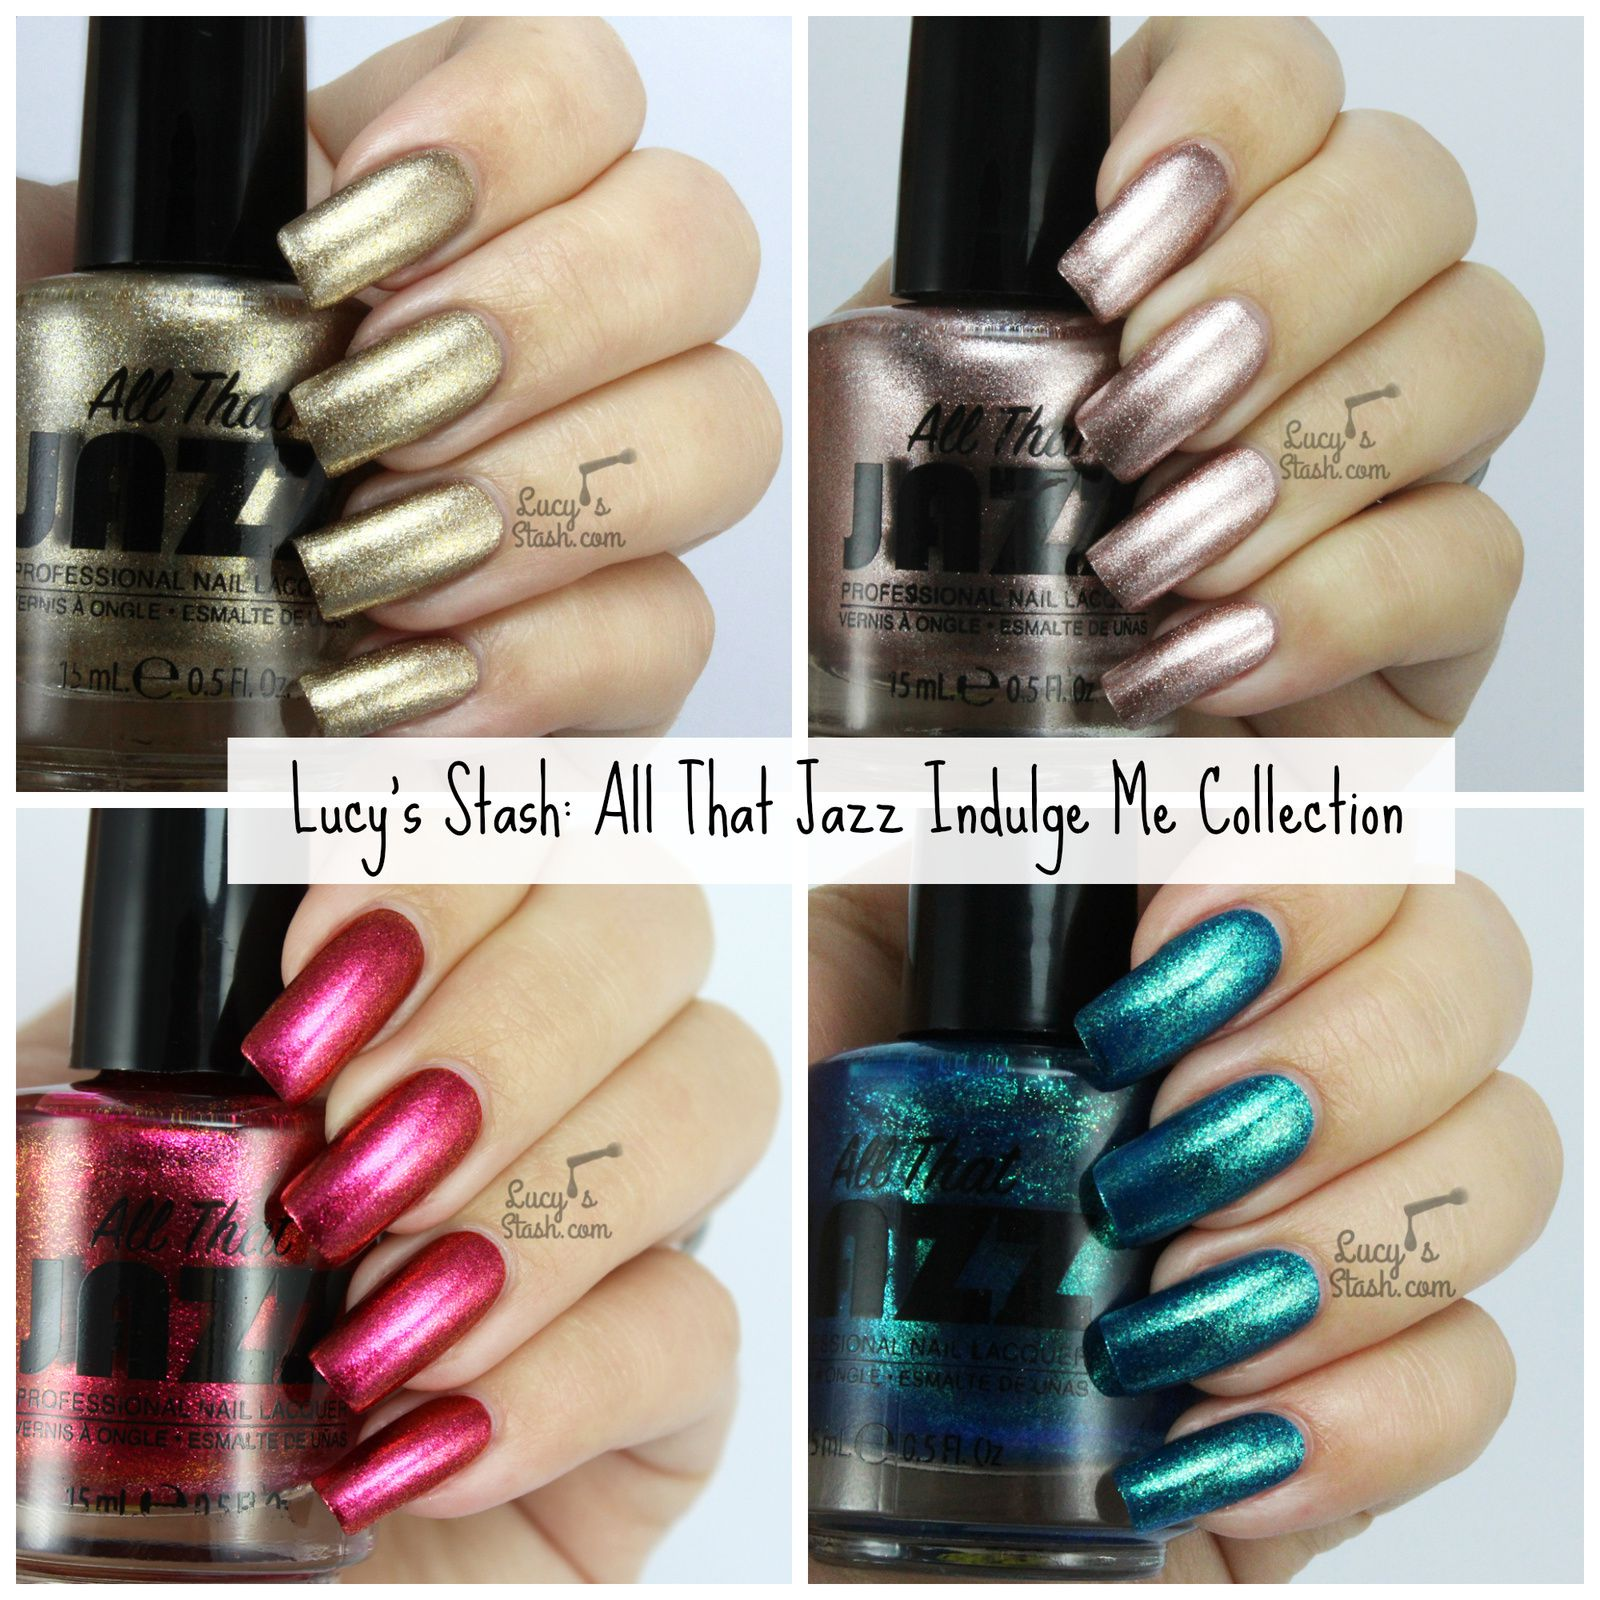 All That Jazz Indulge Me Collection - Review & Swatches